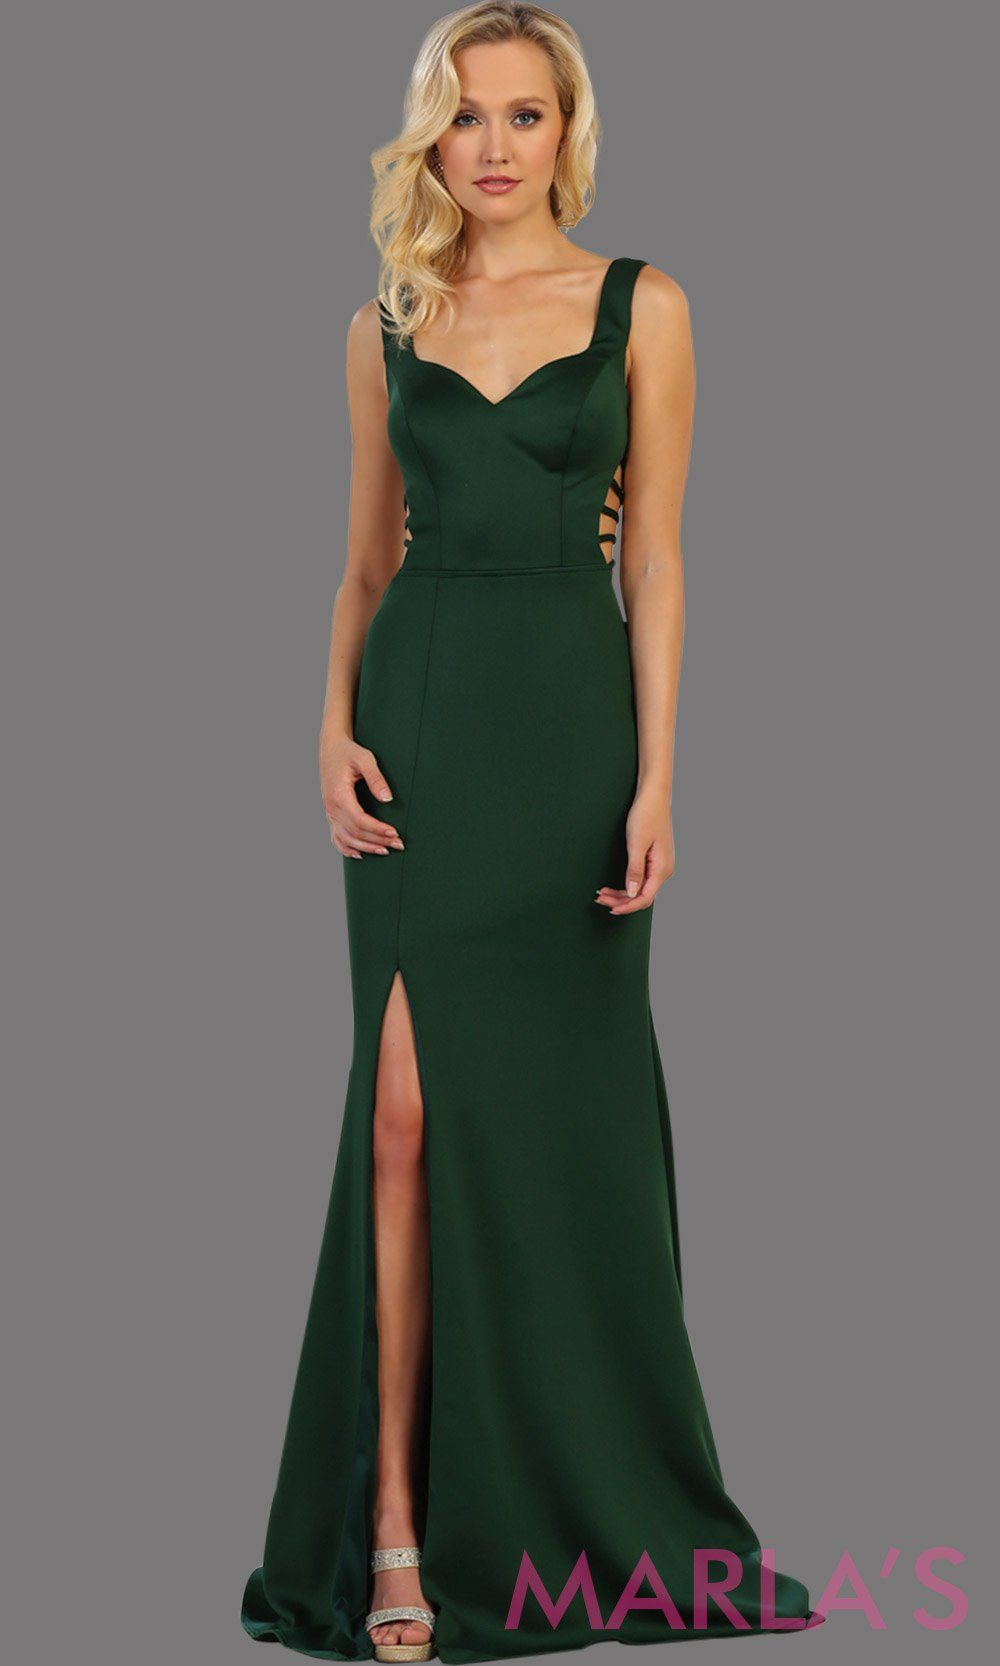 Long dark green fitted dress with open back and high slit. This sleek and sexy dress is perfect for prom, sexy wedding guest dress, gala event. This hunter green gown has a low back and leg slit with v neckline.